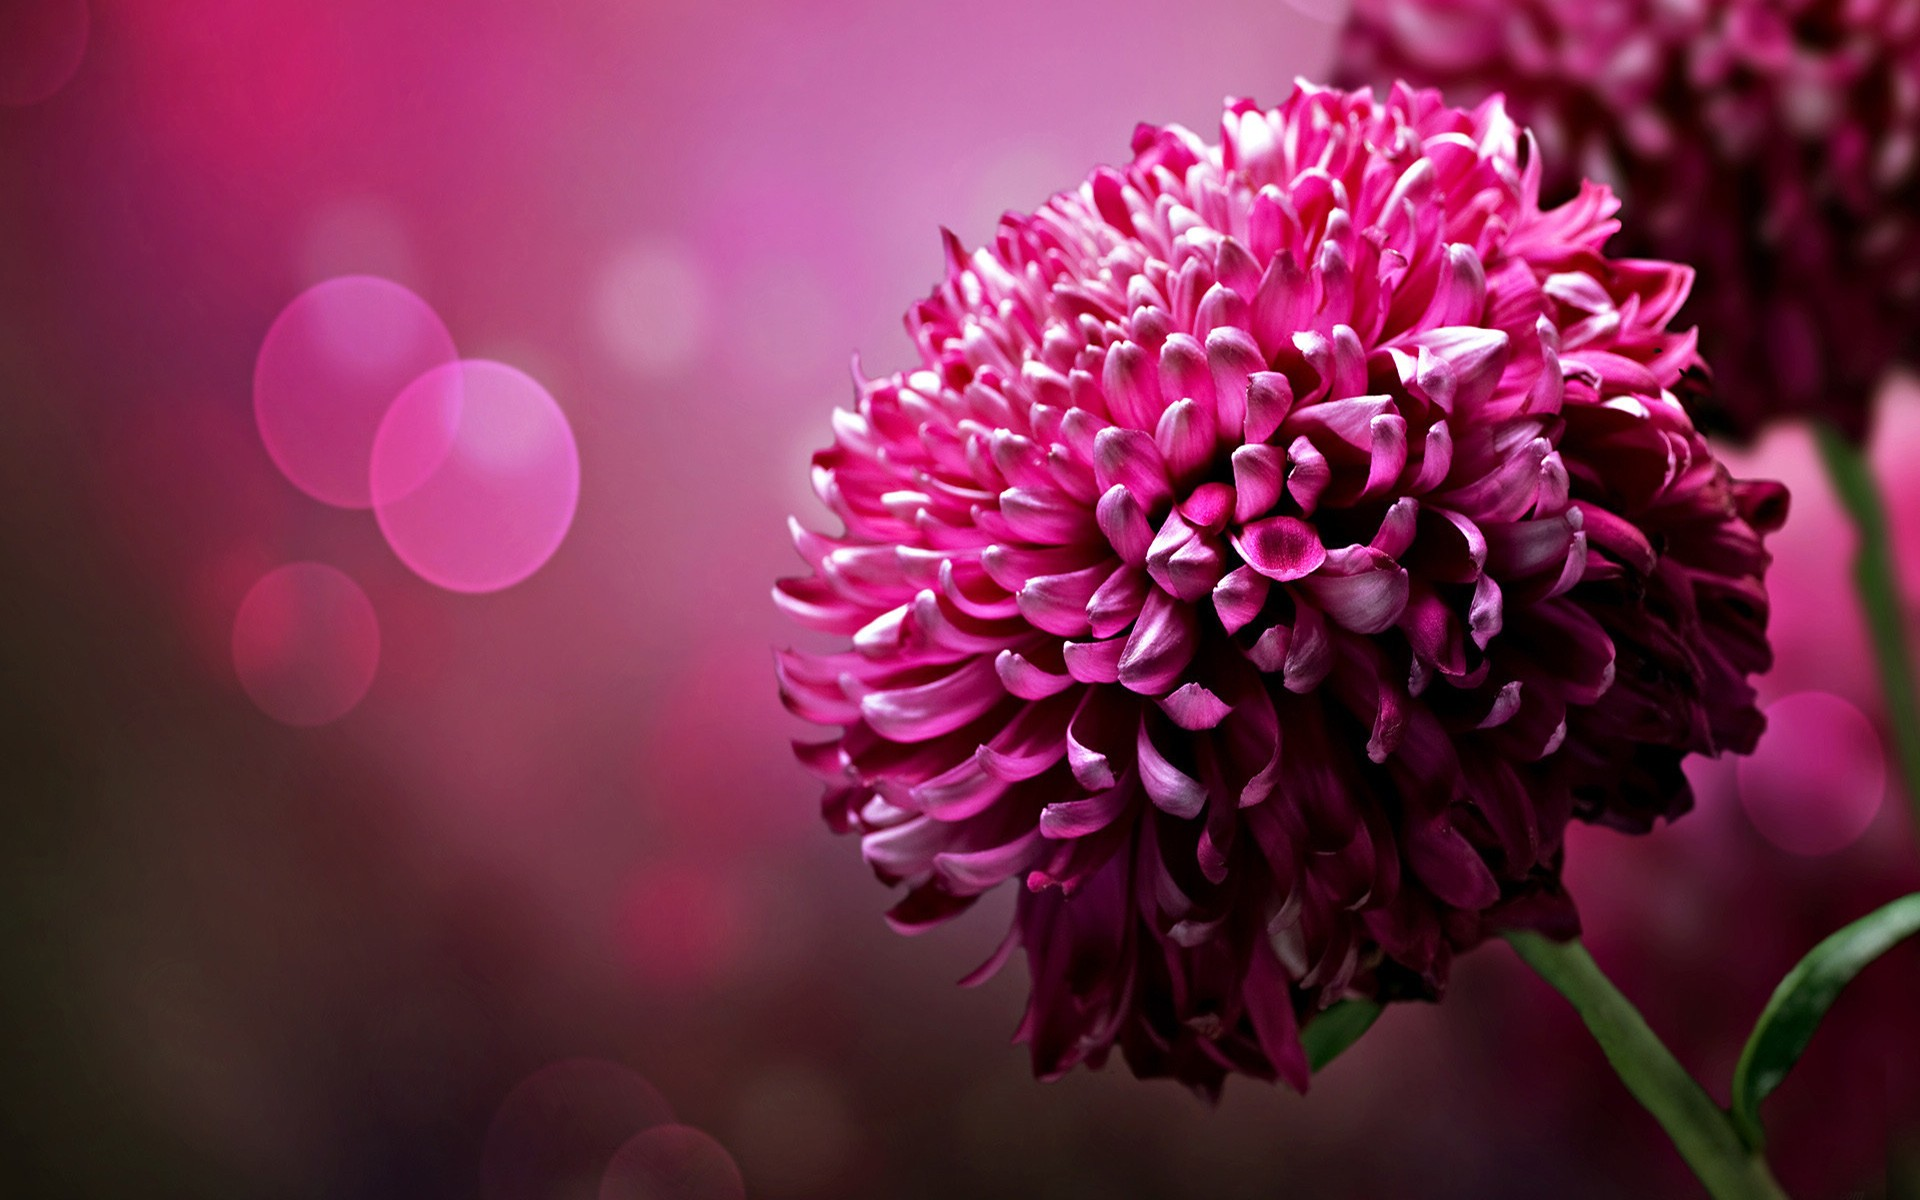 Pink Flower Background Download Free Beautiful Wallpapers For